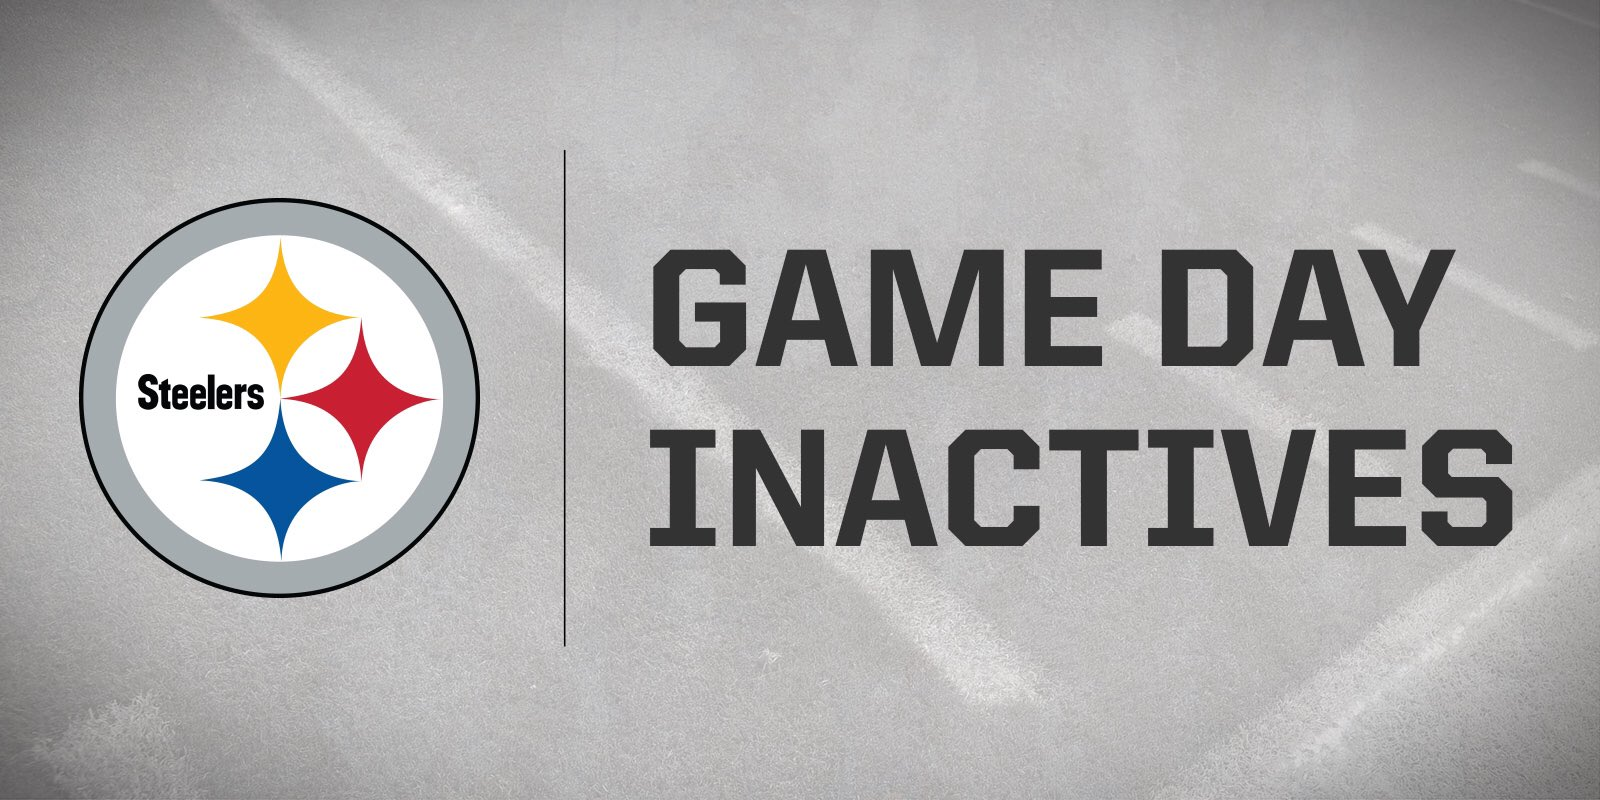 INACTIVES: https://t.co/ghm1IBaR10 https://t.co/oNfHPtRqsy